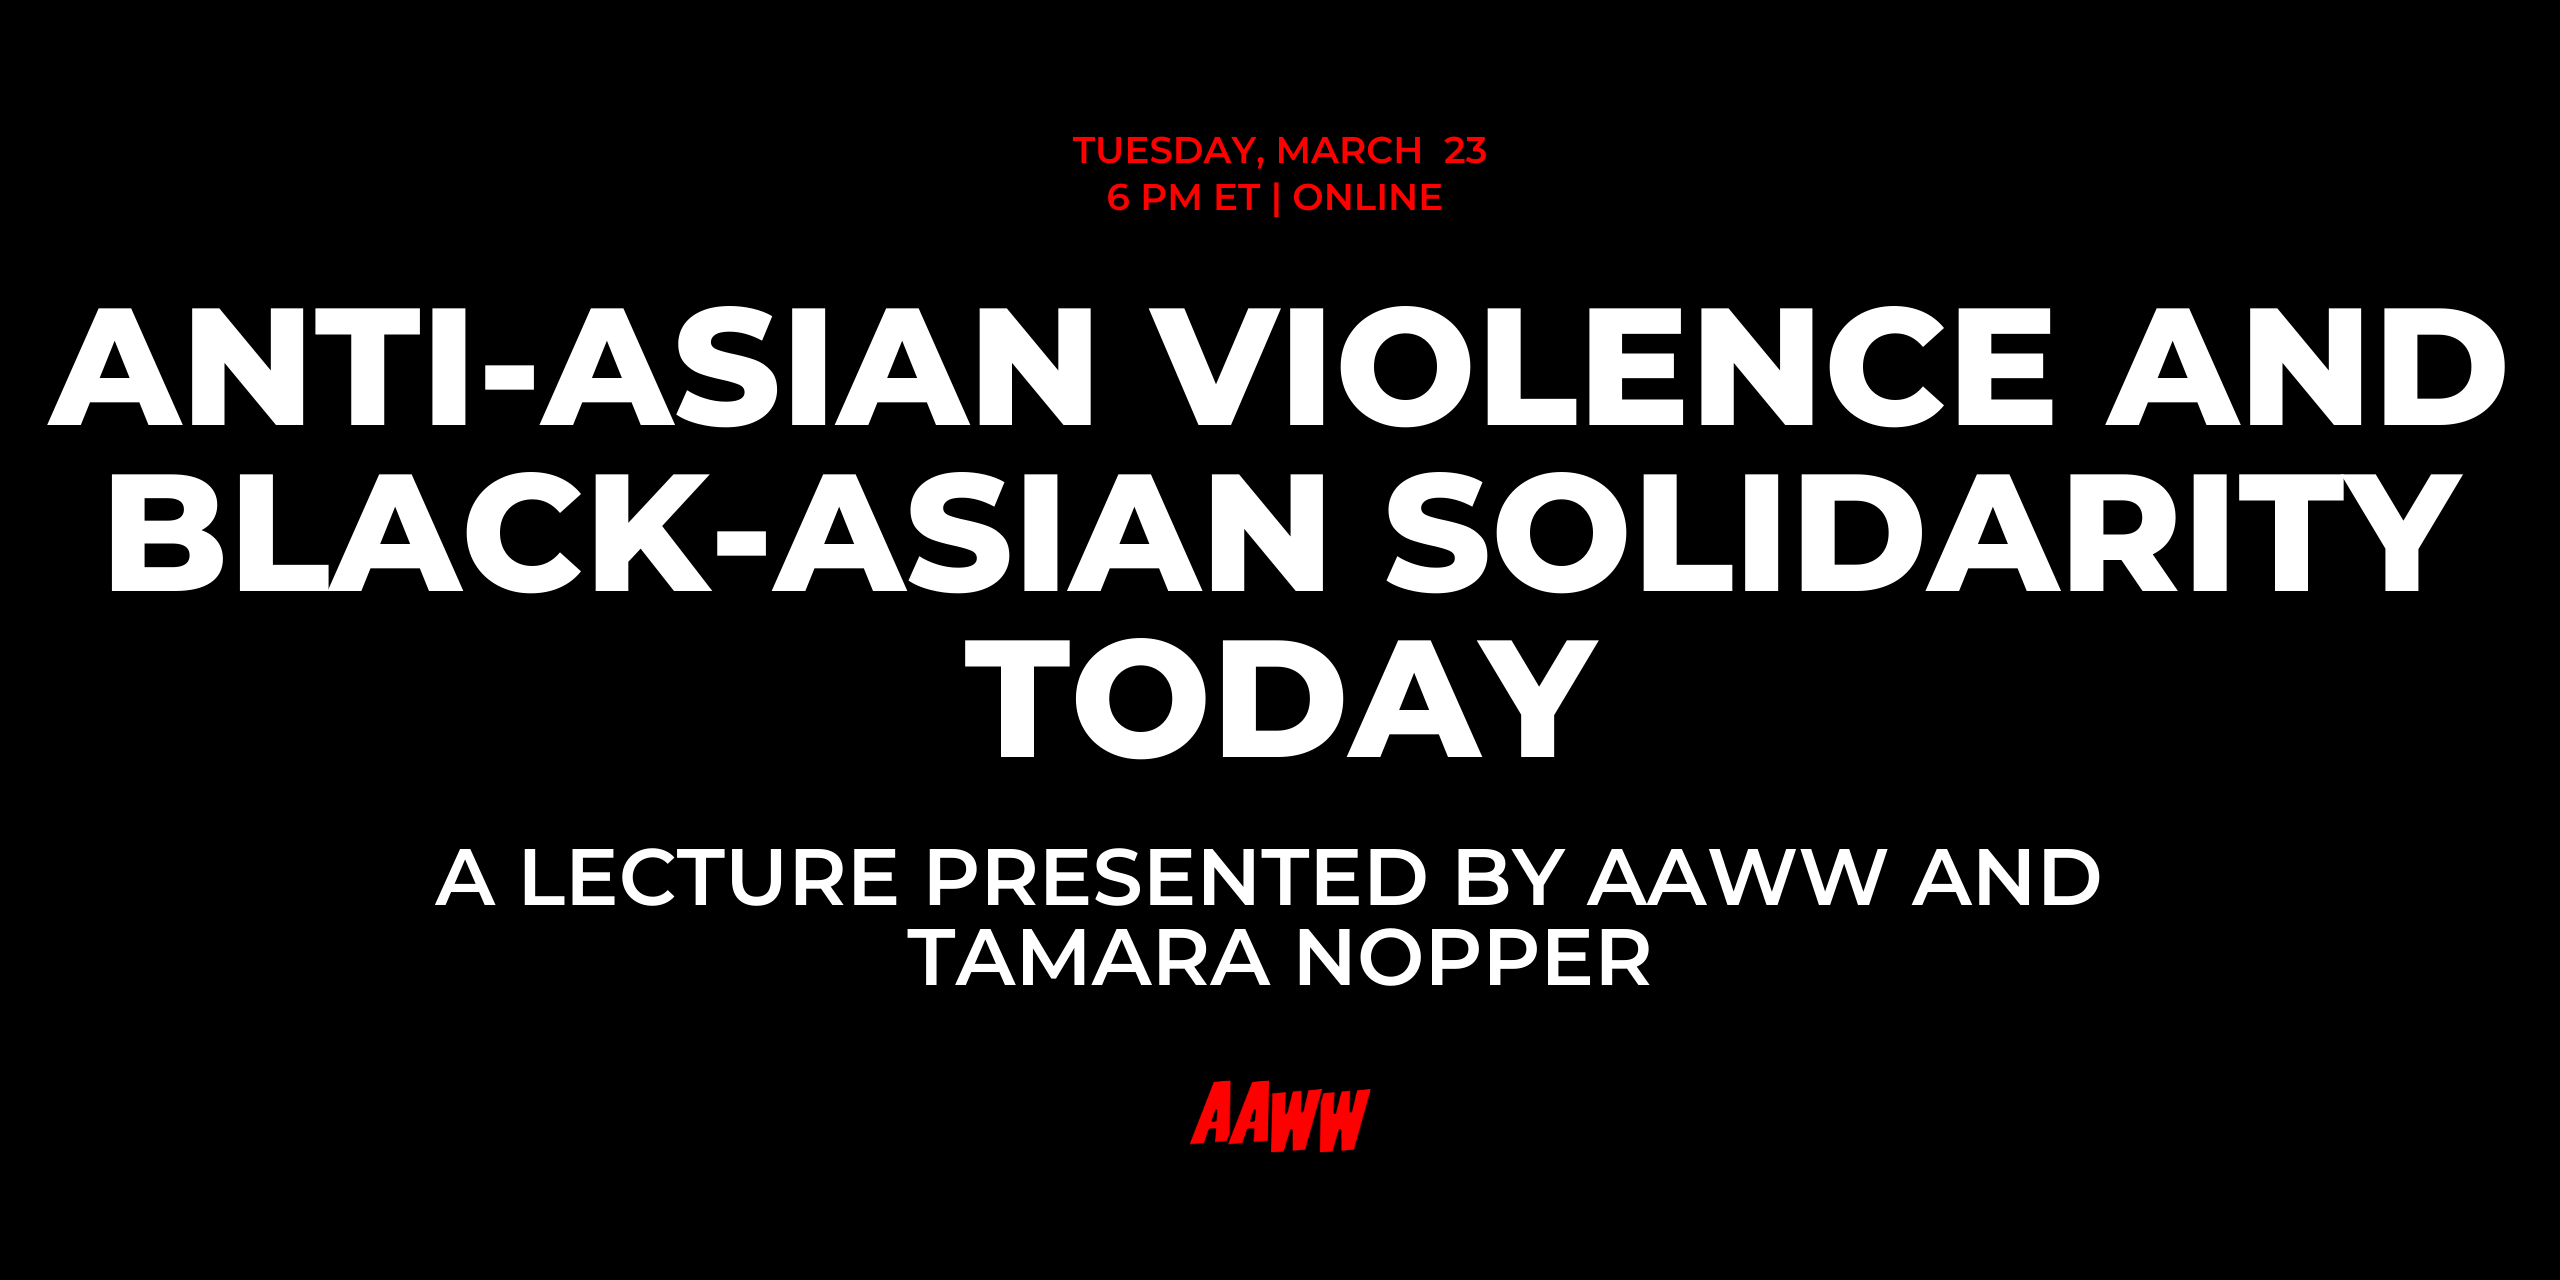 Anti-Asian Violence and Black-Asian Solidarity Today